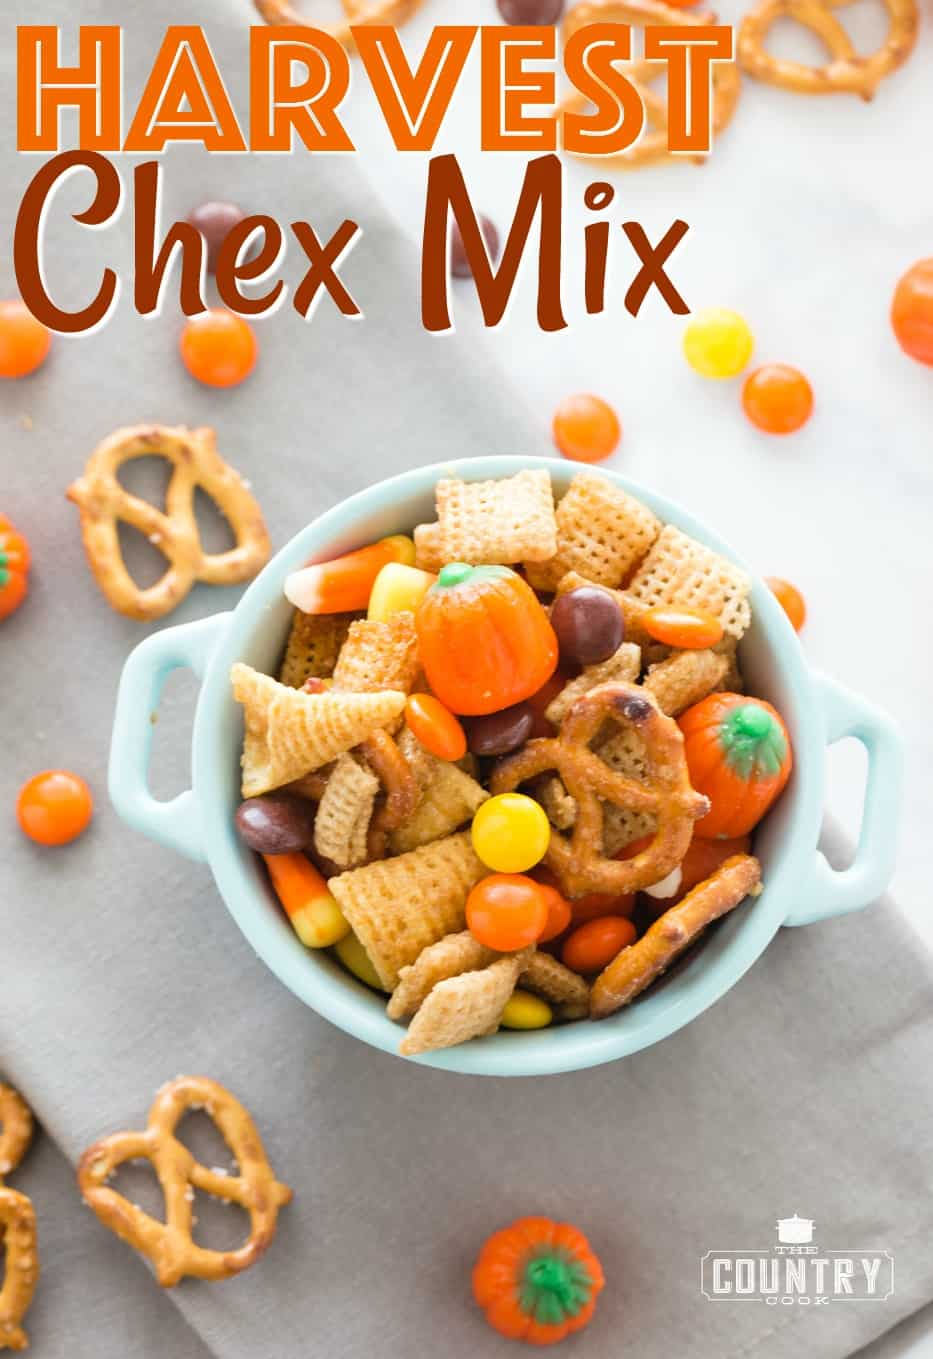 Harvest Chex Mix recipe from The Country Cook. Chex mix shown in a small white bowl with pretzels and Reese's pieces candy scattered around it.